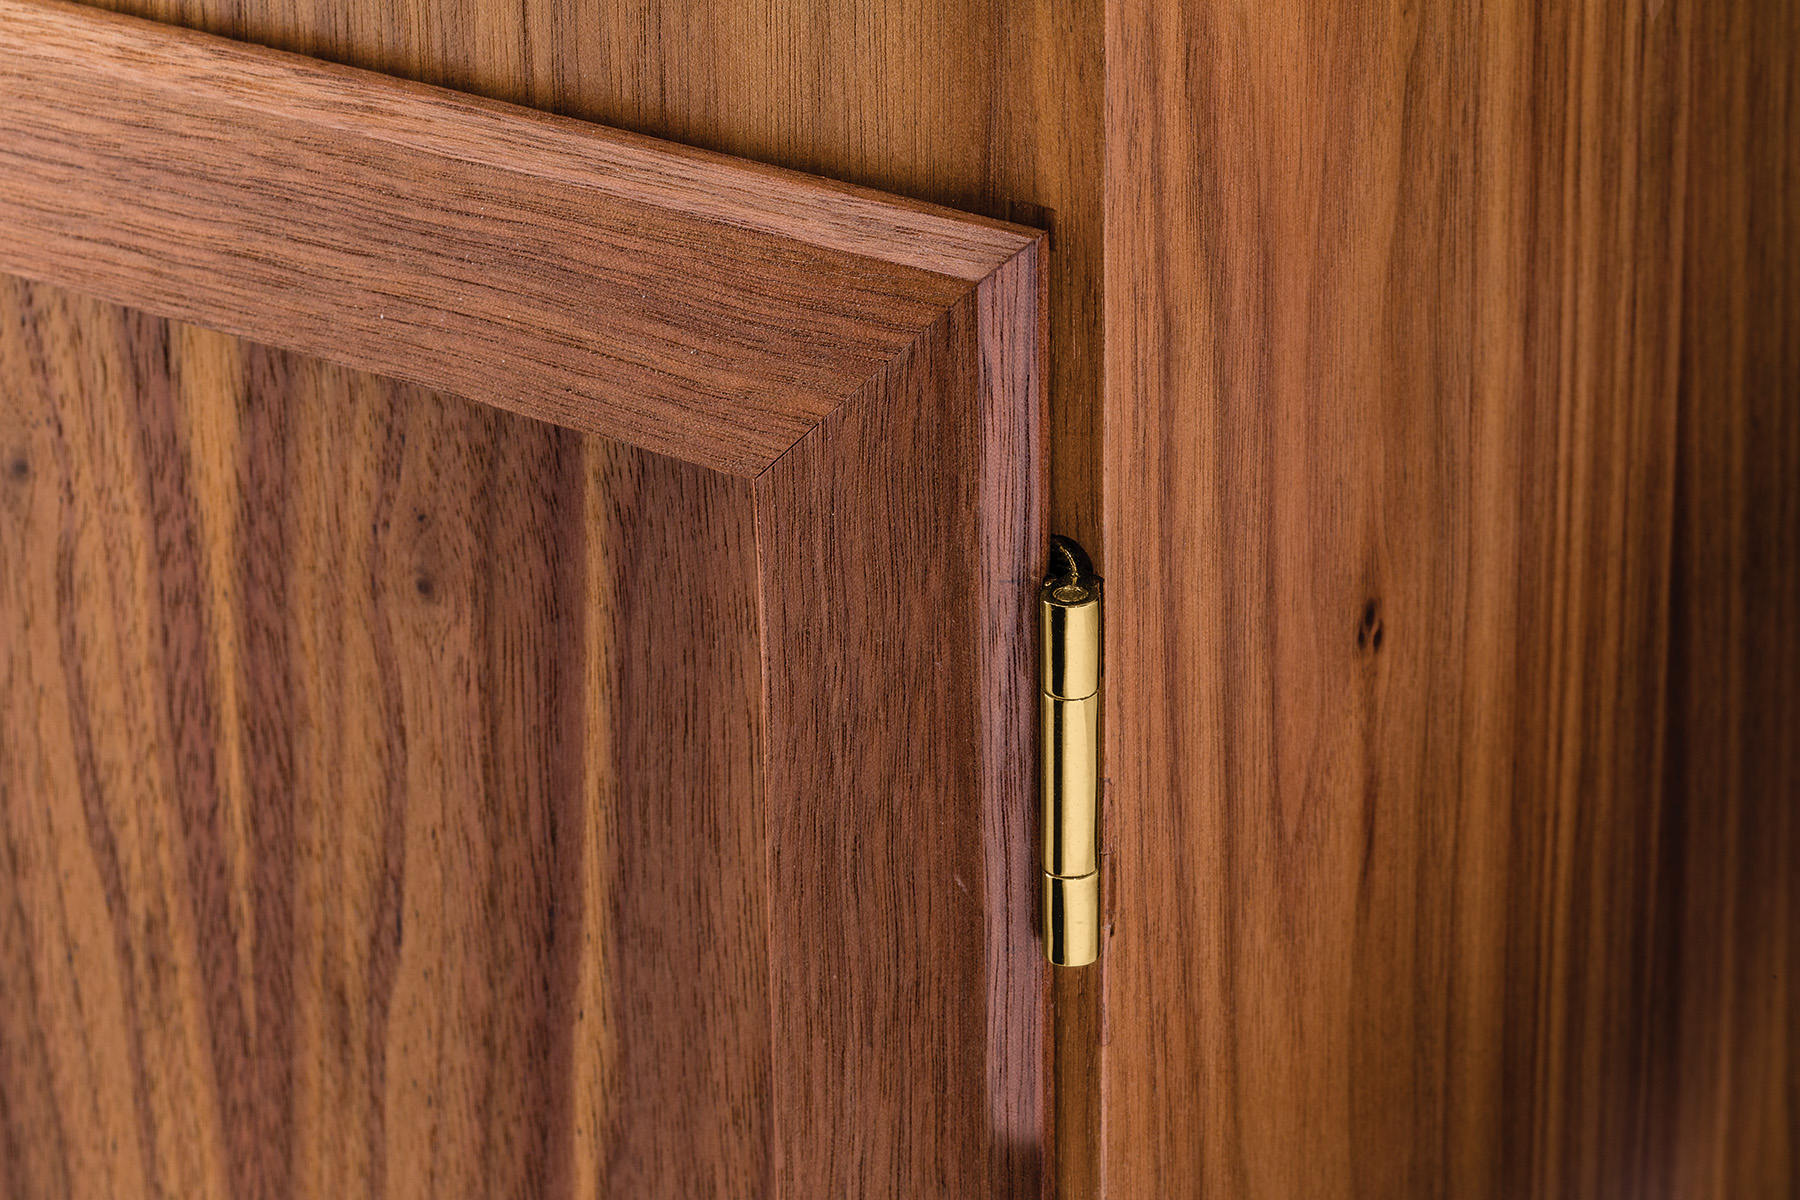 Rockler Woodworking And Hardware Introduces Decorative